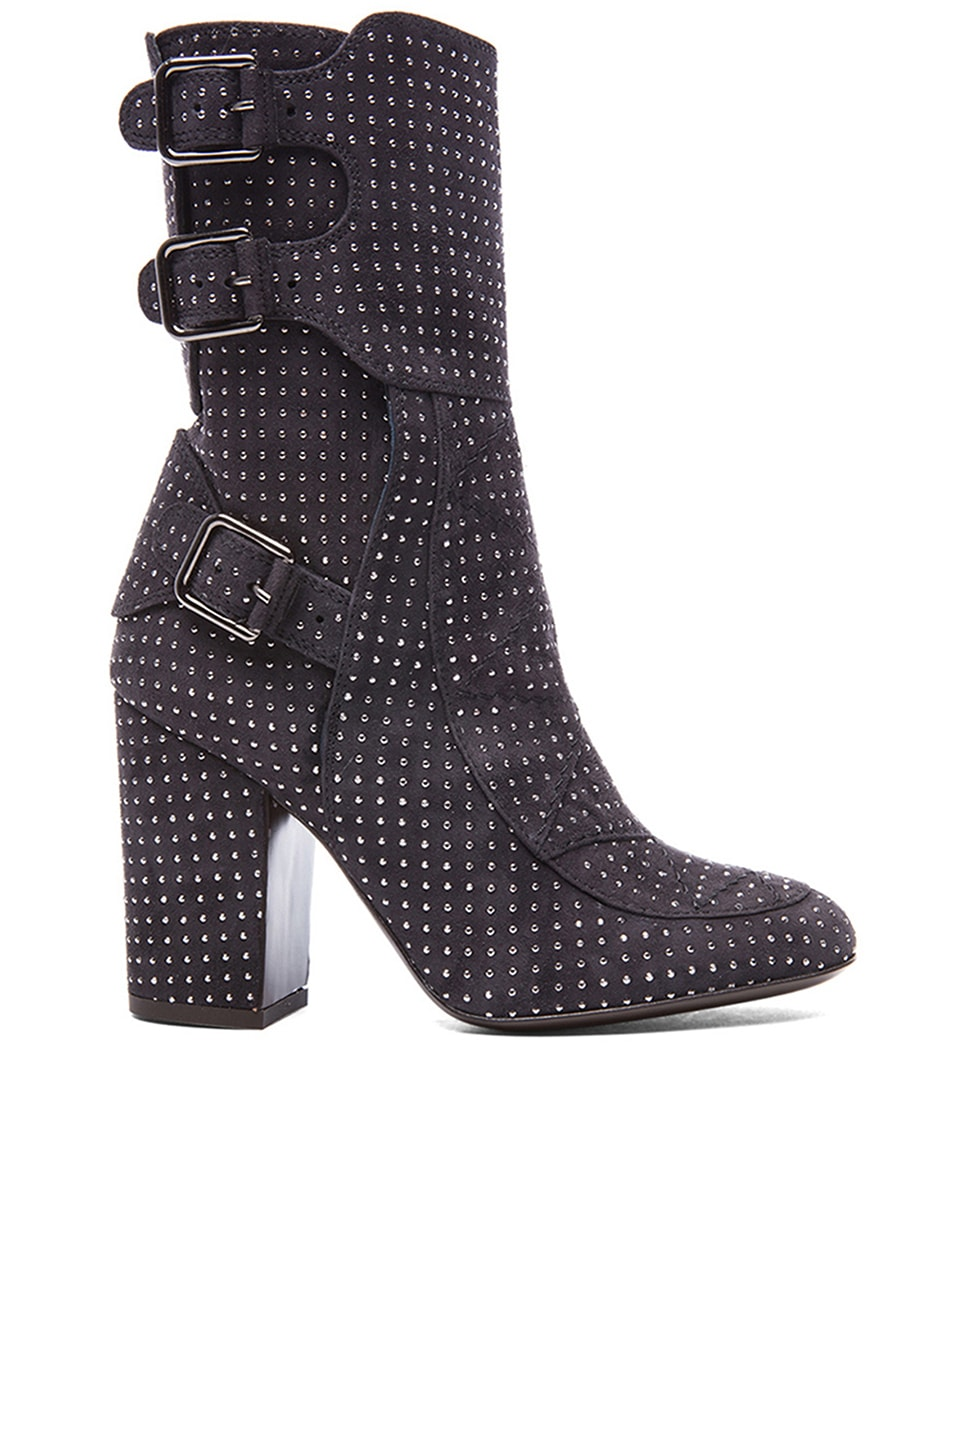 Image 1 of Laurence Dacade Merli Suede Studded Boots in Anthracite & Rutenium